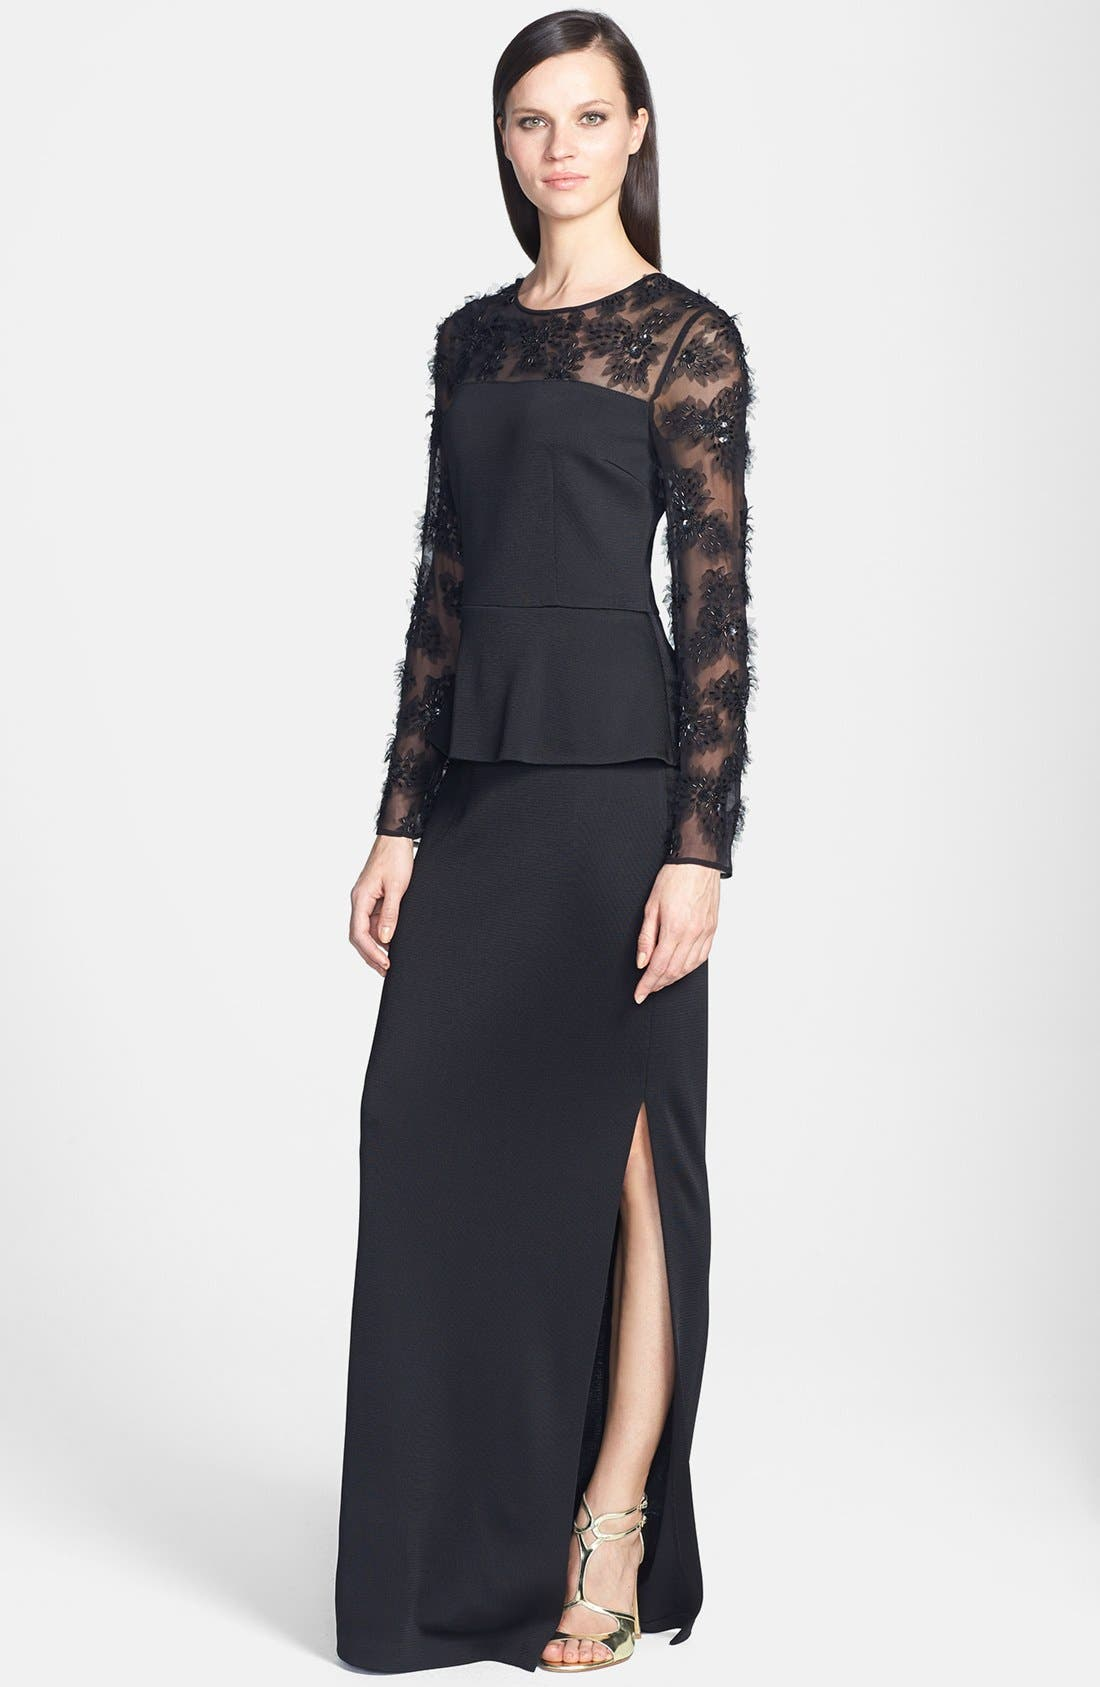 Main Image - St. John Collection Tulle Trim Sateen Milano Knit Peplum Gown